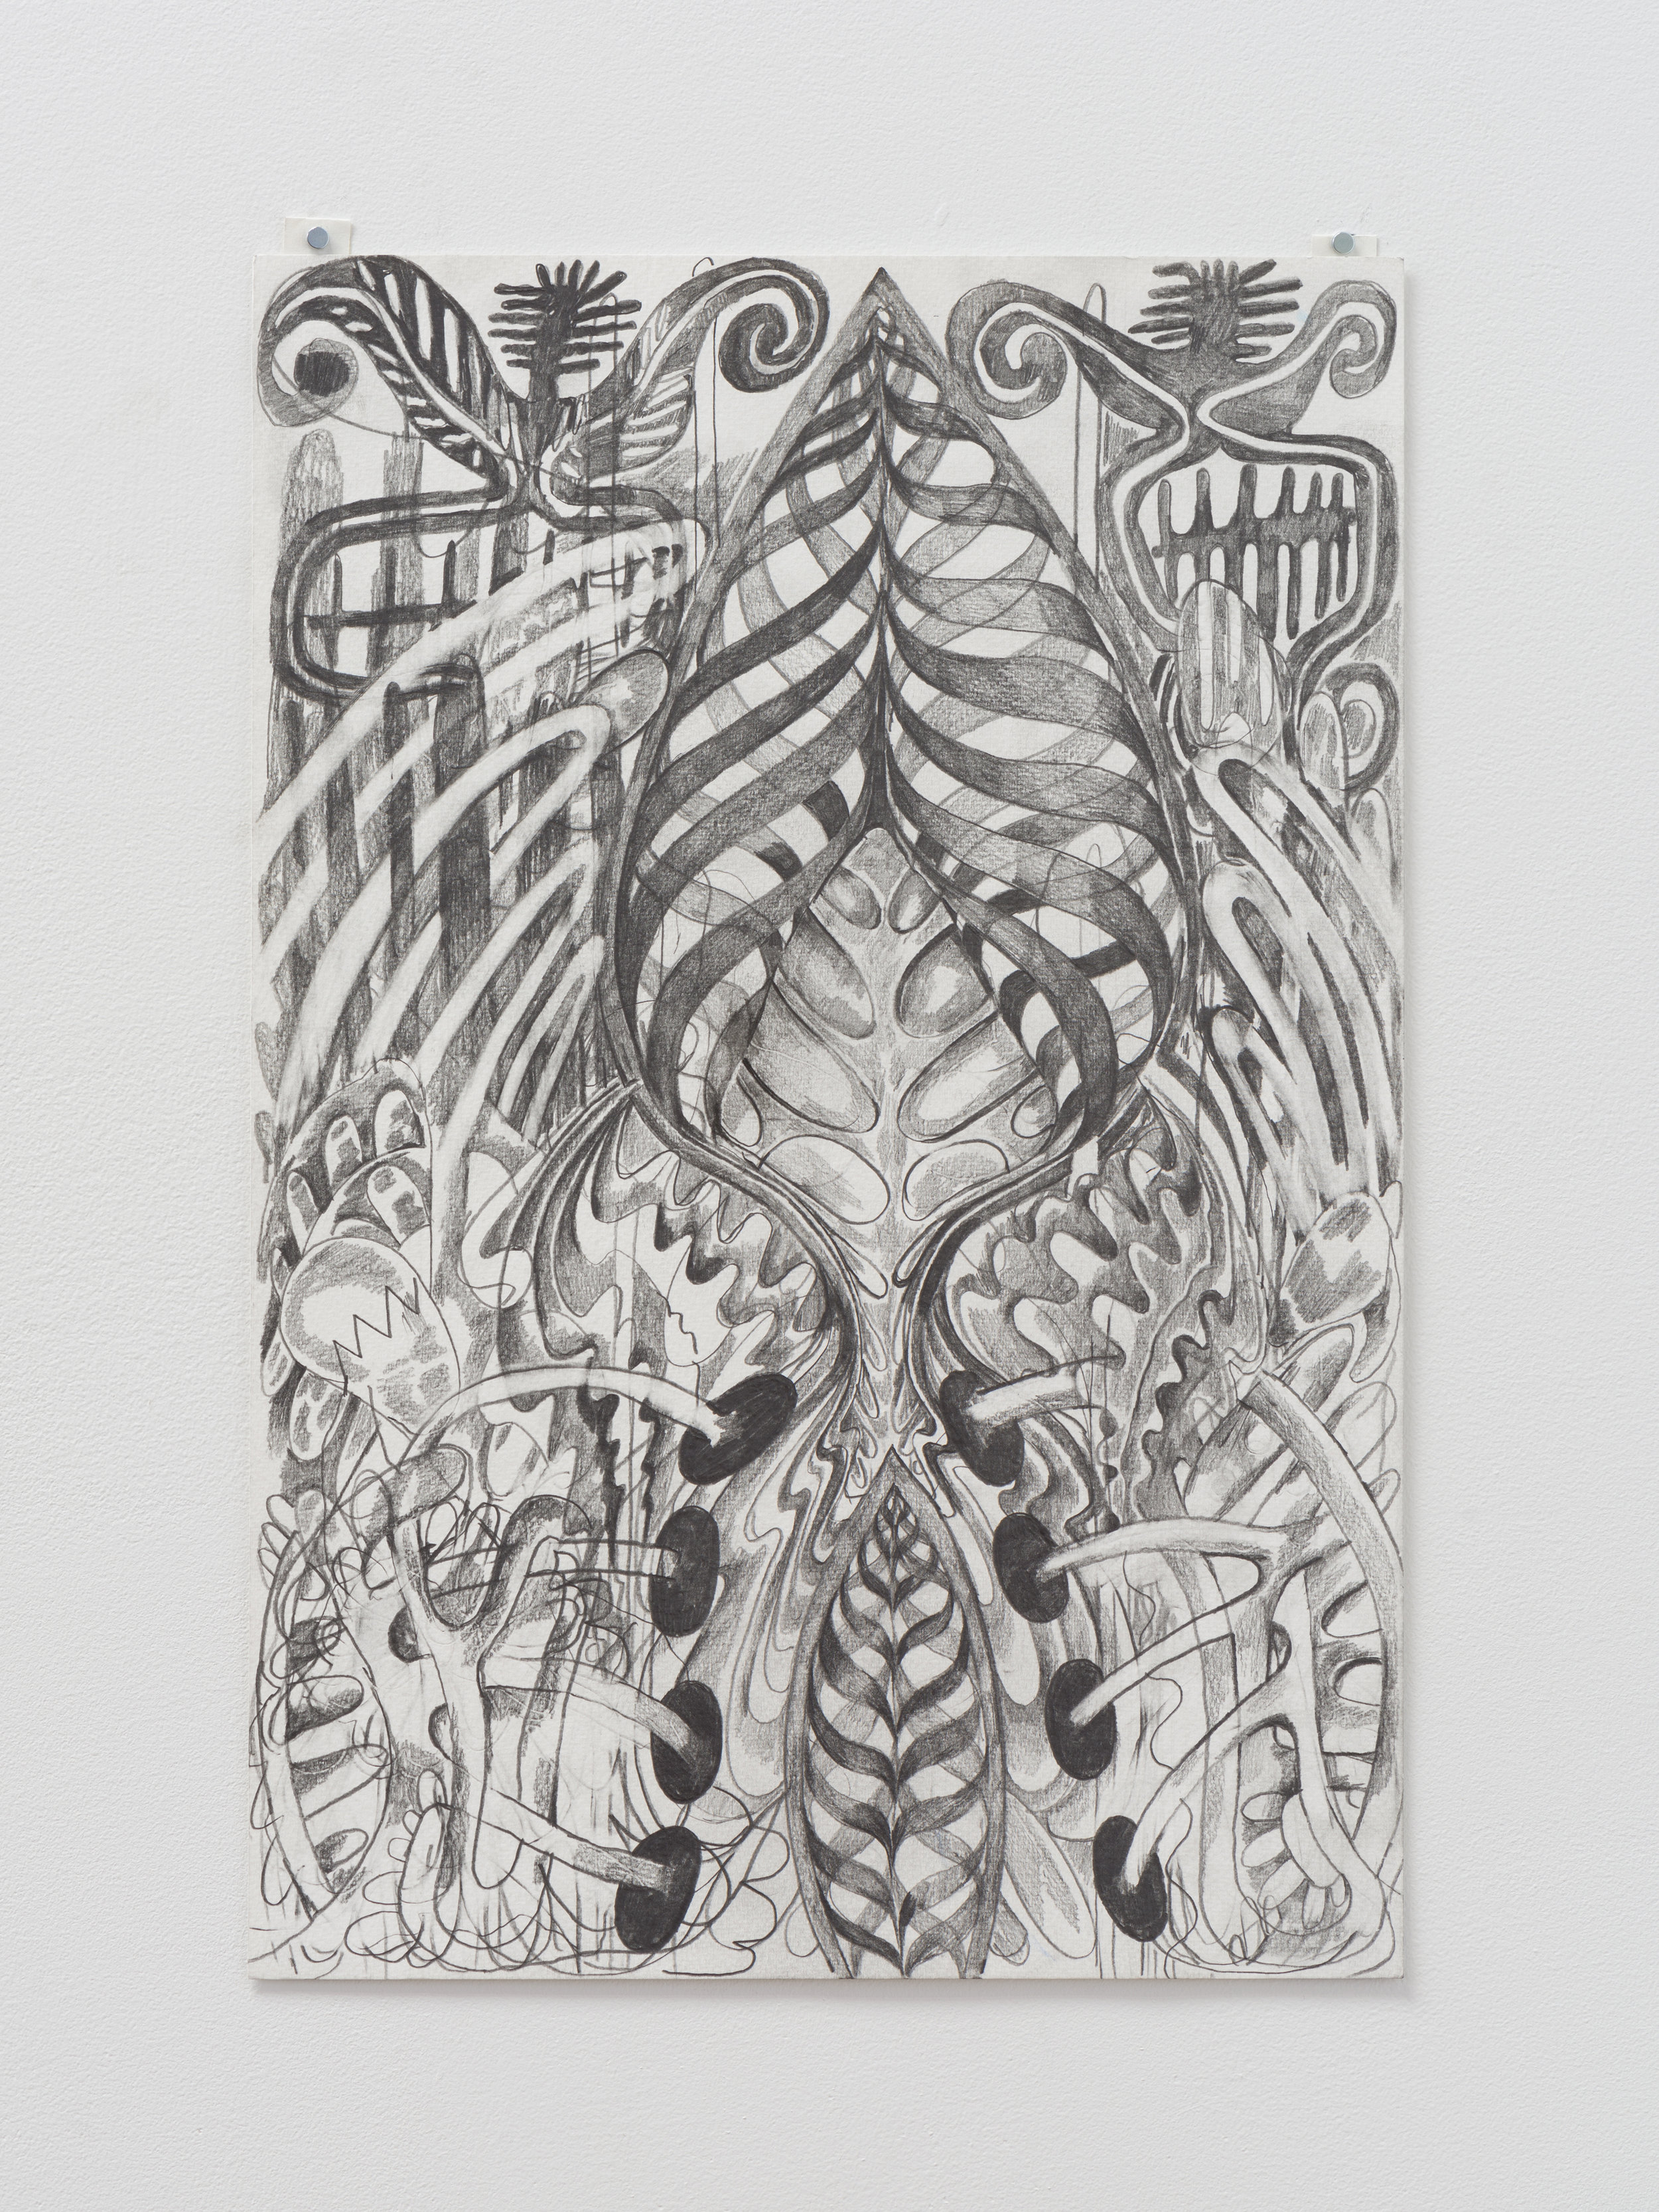 Daniel Ingroff    Spare Ribs   2017 Graphite on paper 18 x 12 inches